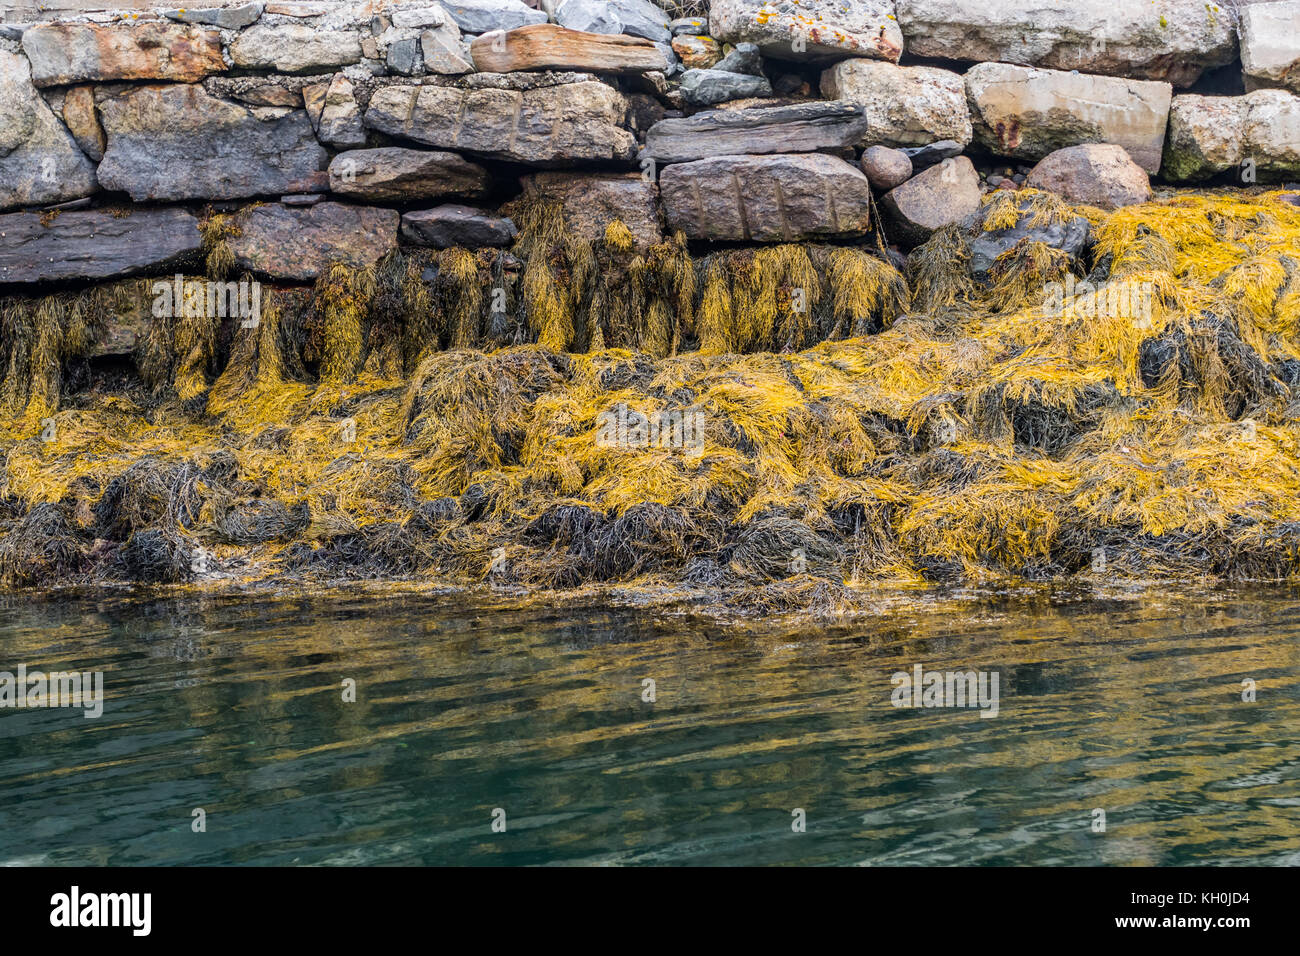 Yellow Seaweed At Low Tide along Maine coast in autumn - Stock Image